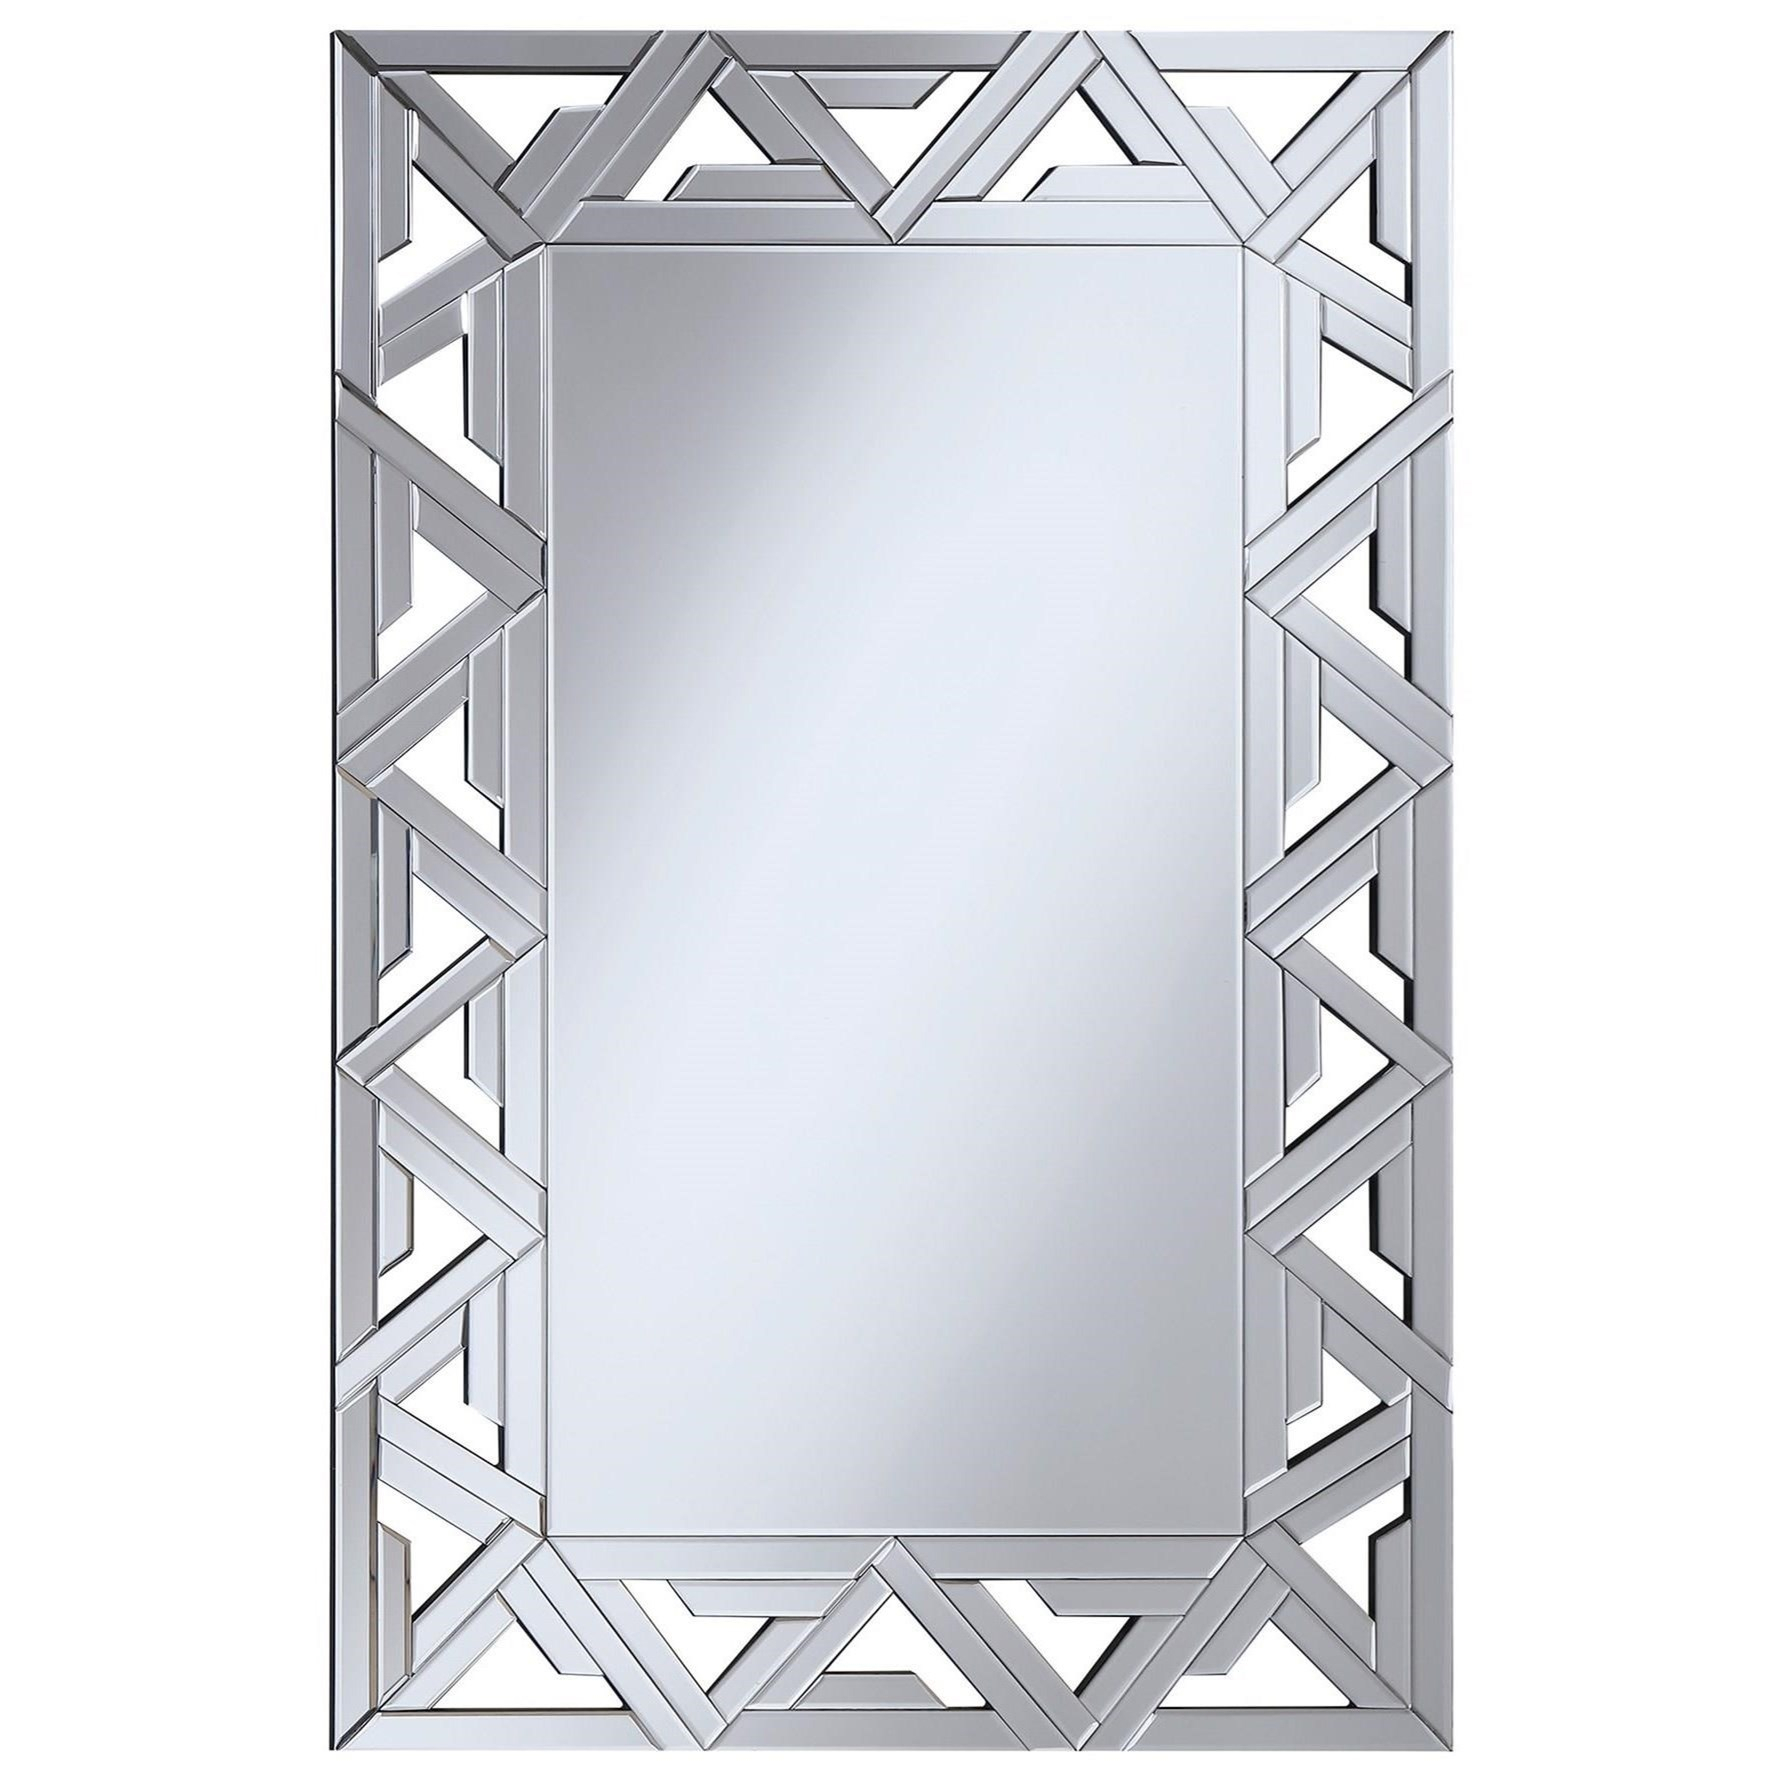 Accent Mirrors Geometric Wall Mirror With Mirrored Framecoaster At Dunk & Bright Furniture Inside Silver Frame Accent Mirrors (View 23 of 30)